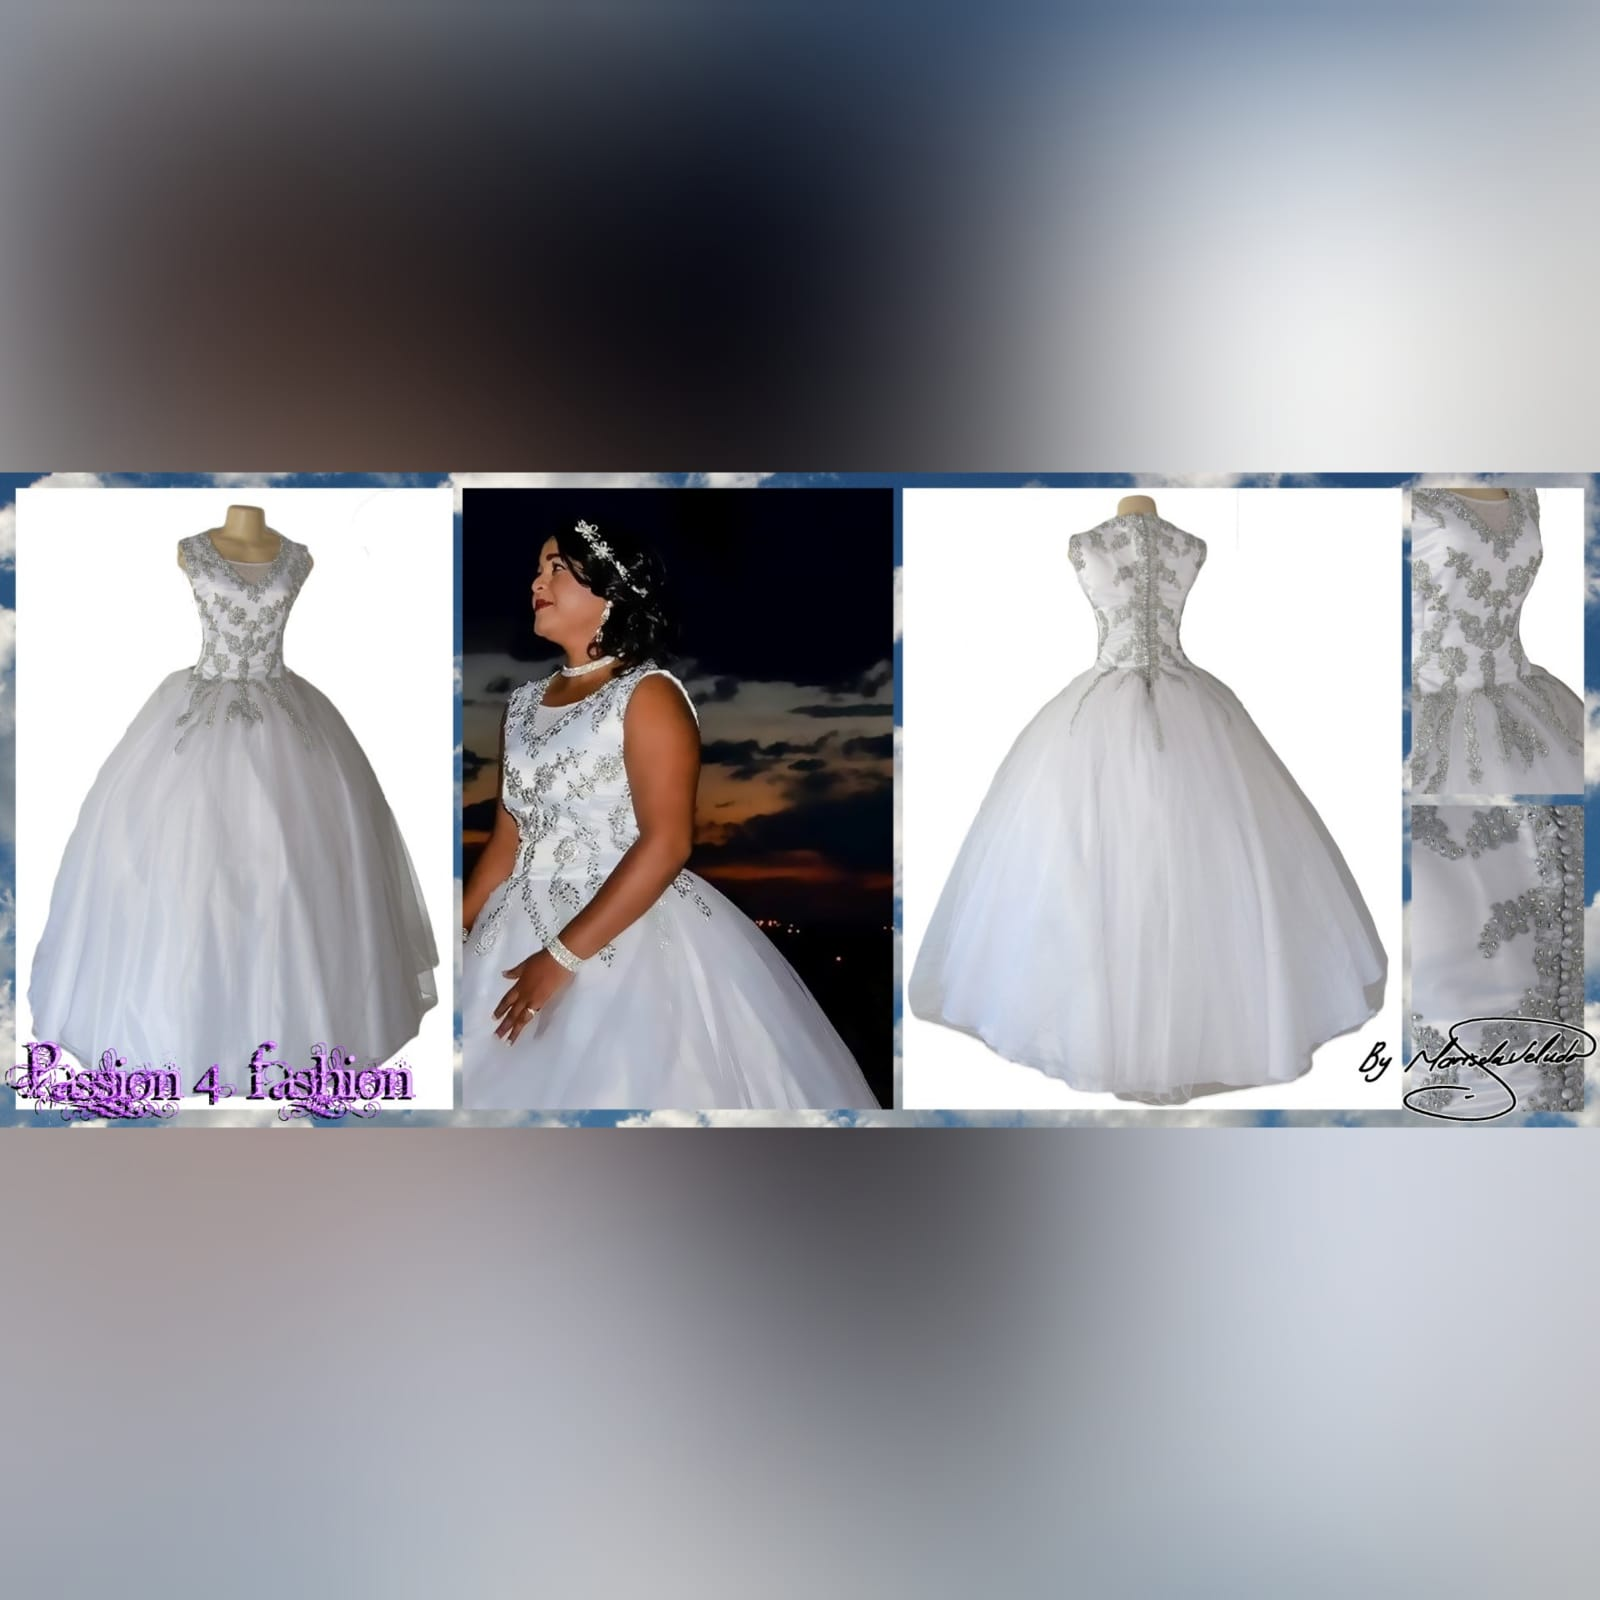 White & silver ball gown wedding dress 12 white & silver ballgown wedding dress. Bodice detailed with silver detail and beads. Falling to the ballgown. Back detailed with silver covered buttons.